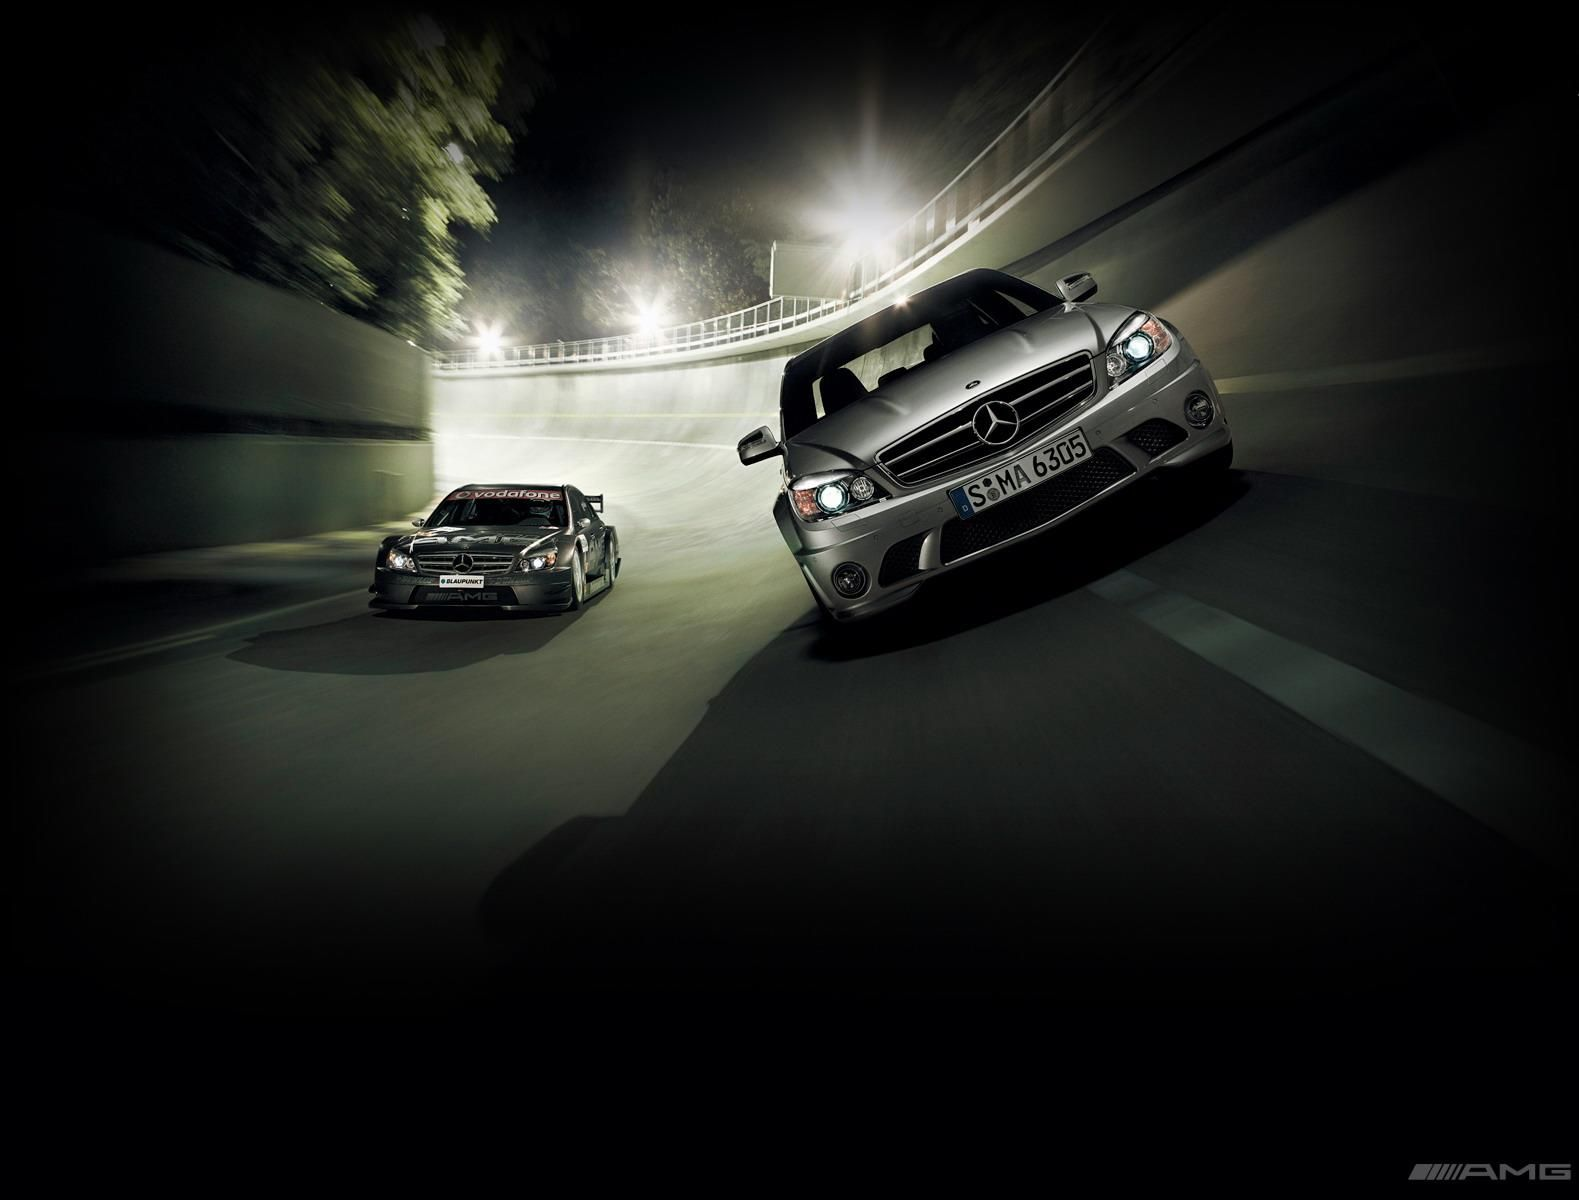 2012 mercedes benz c63 amg car wallpaper wallpaper free download - Collection Of Mercedes Wallpaper On Hdwallpapers Mercedes Benz Amg Wallpapers Wallpapers